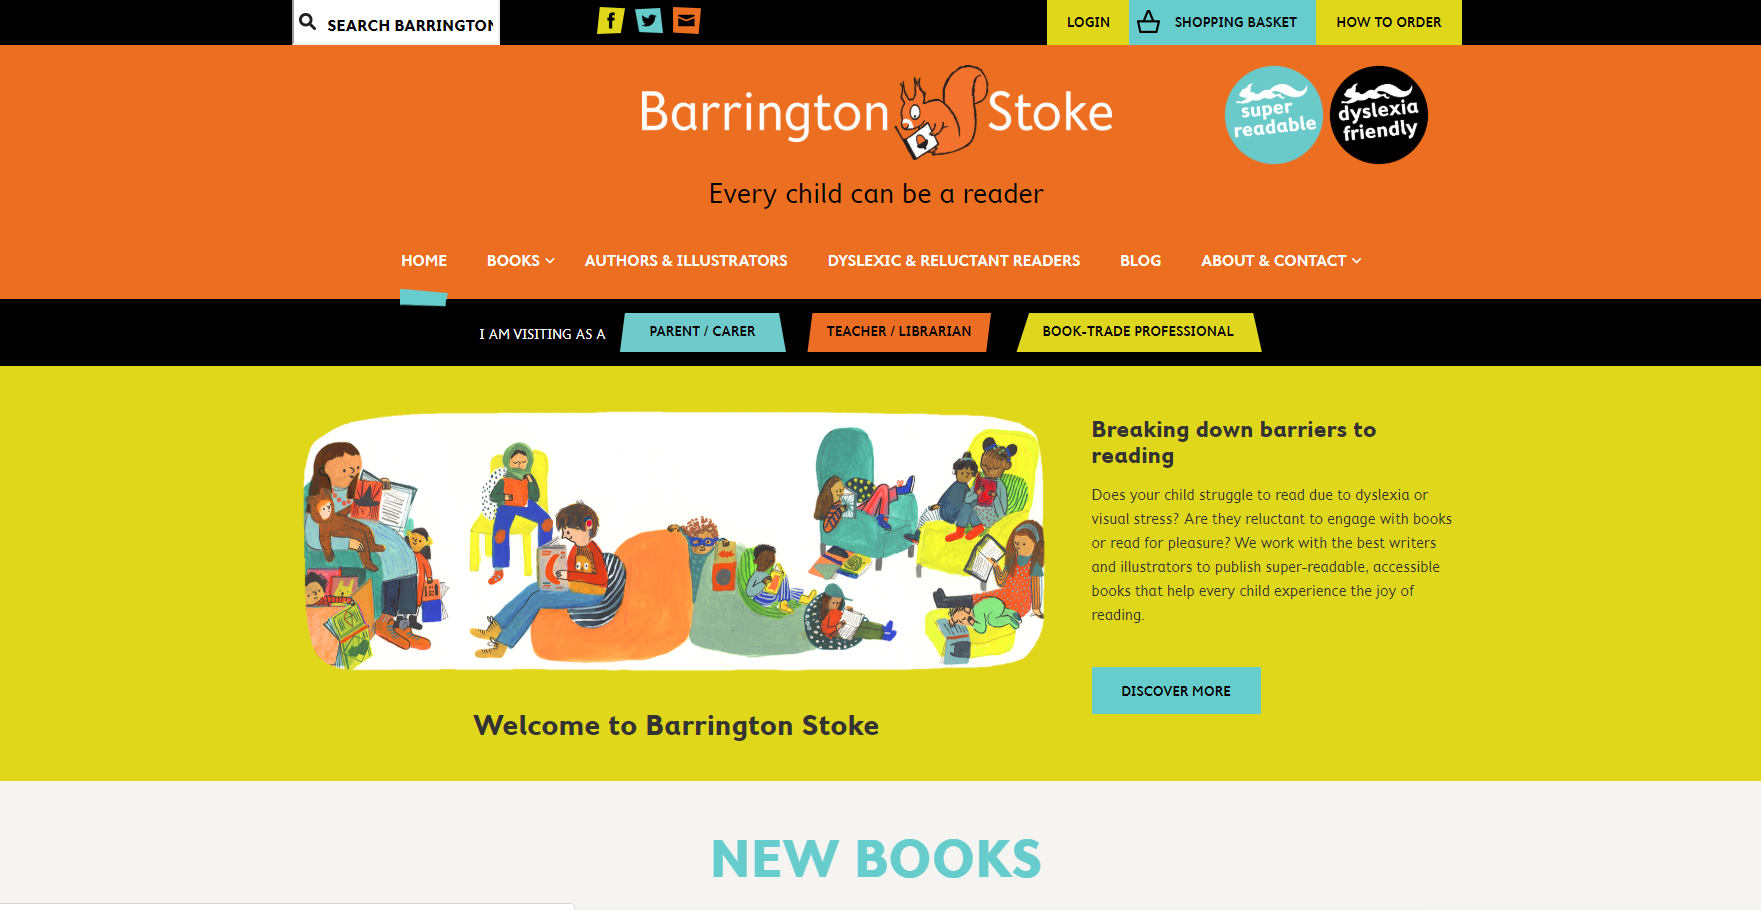 Websites - A website presence is essential for an author or brand that really wants to stand out. I can build basic WordPress and SquareSpace sites and draft all the necessary handover notes so you can be fully in charge of your own site.Rates: £150 a day or £20 an hour(Website pictured: barringtonstoke.co.uk, conception by myself and execution by BookSwarm)